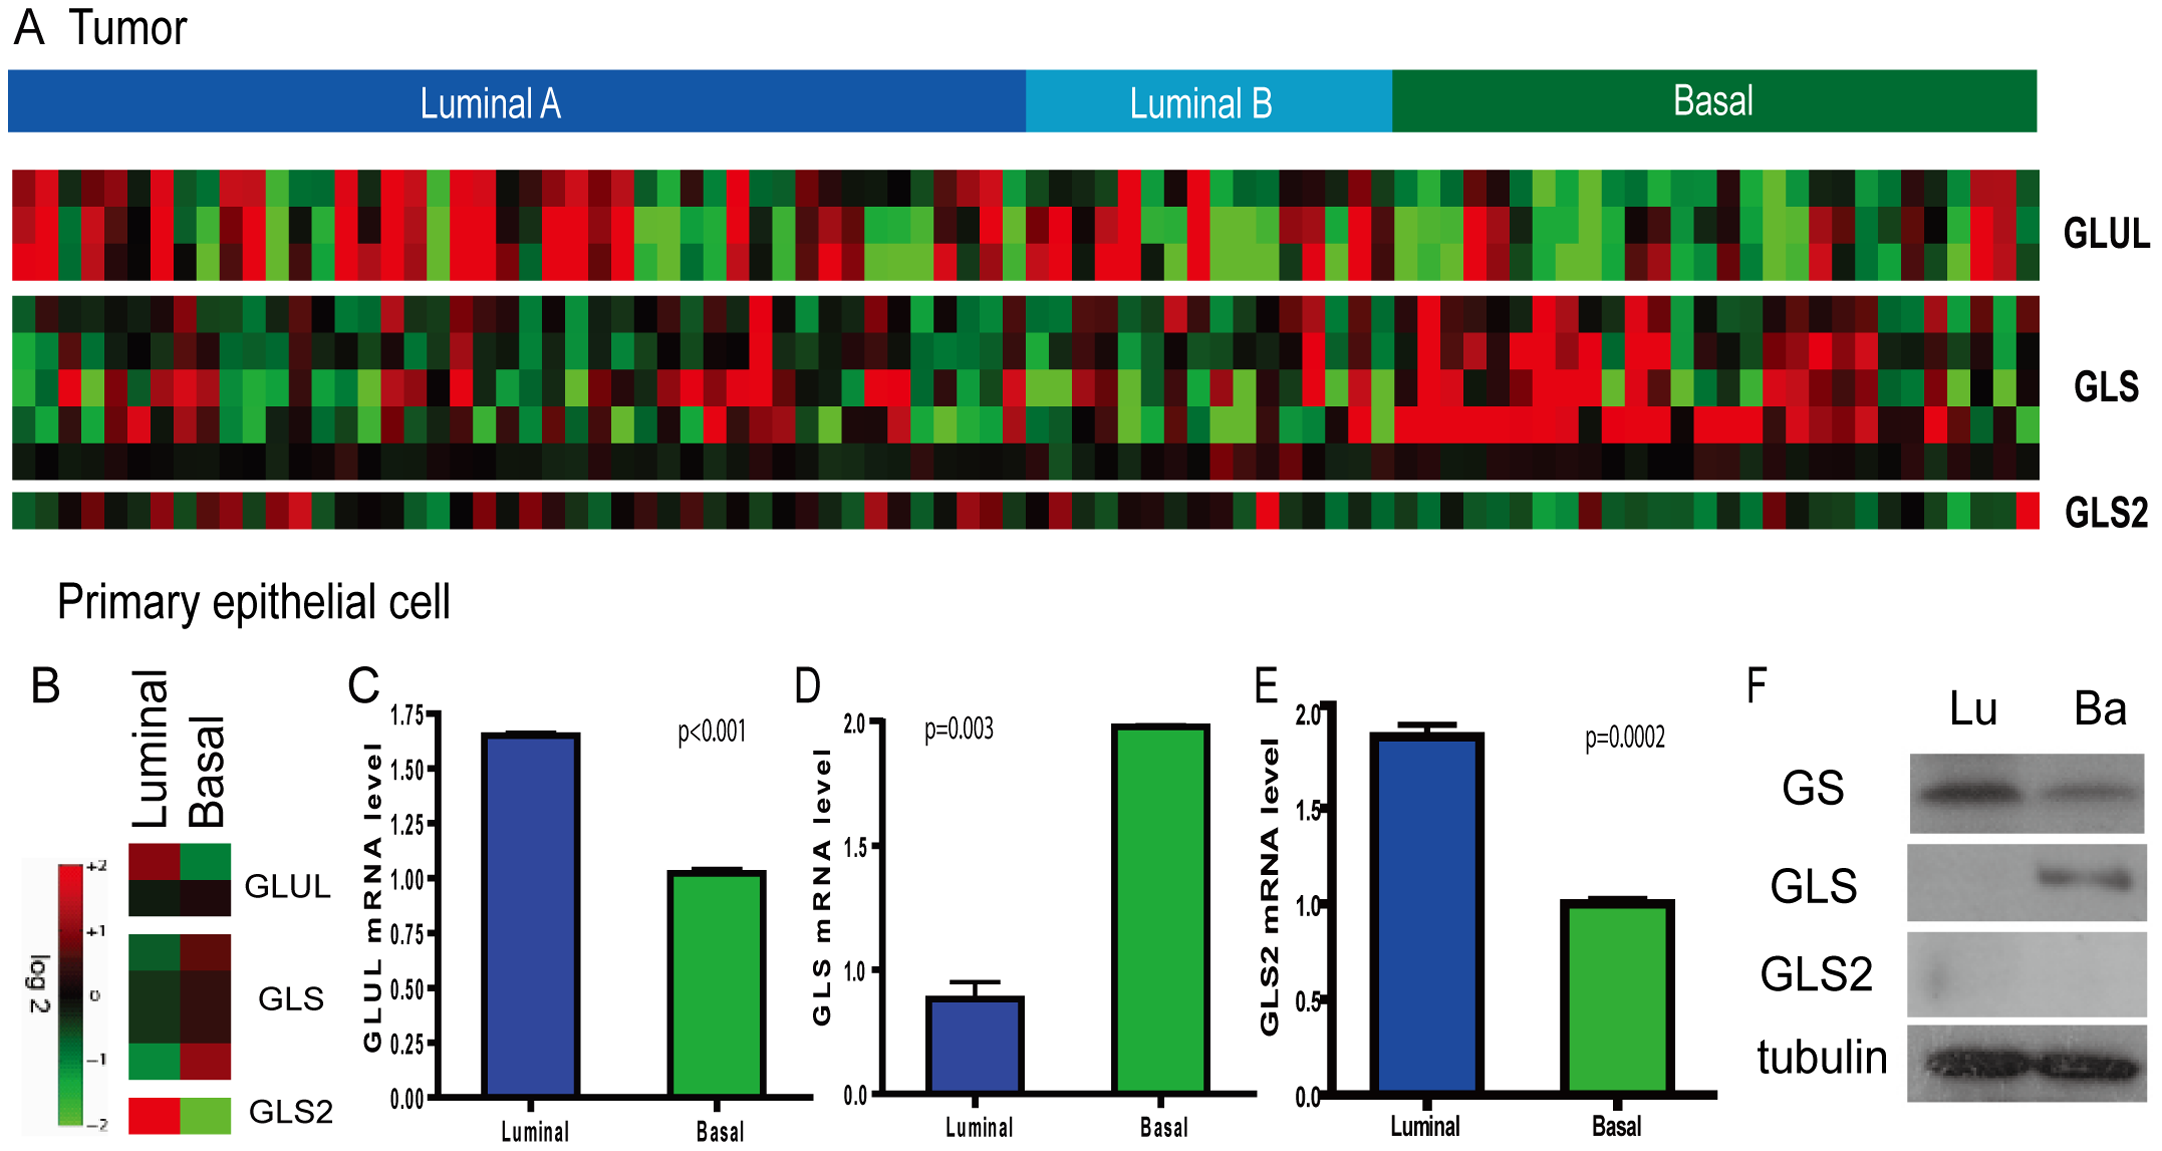 Persistent differential expression of genes encoding glutamine-metabolizing enzymes in the basal and luminal breast tumors and primary epithelial cells.